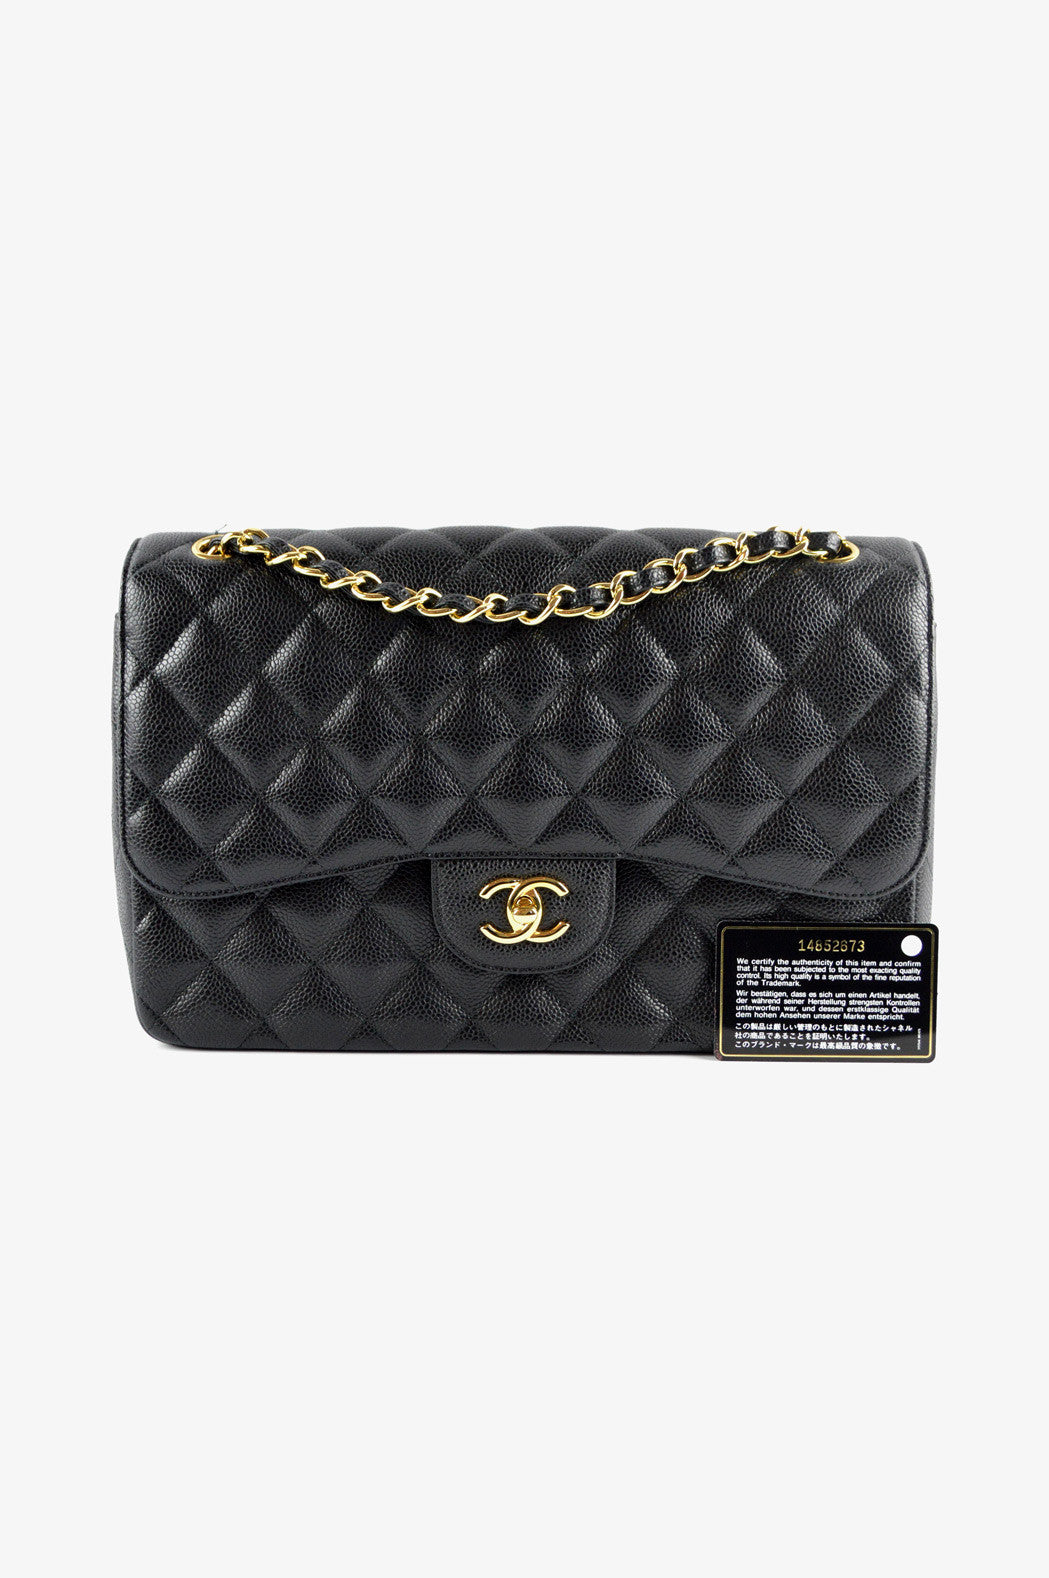 Black Caviar Jumbo Double Flap Bag GHW